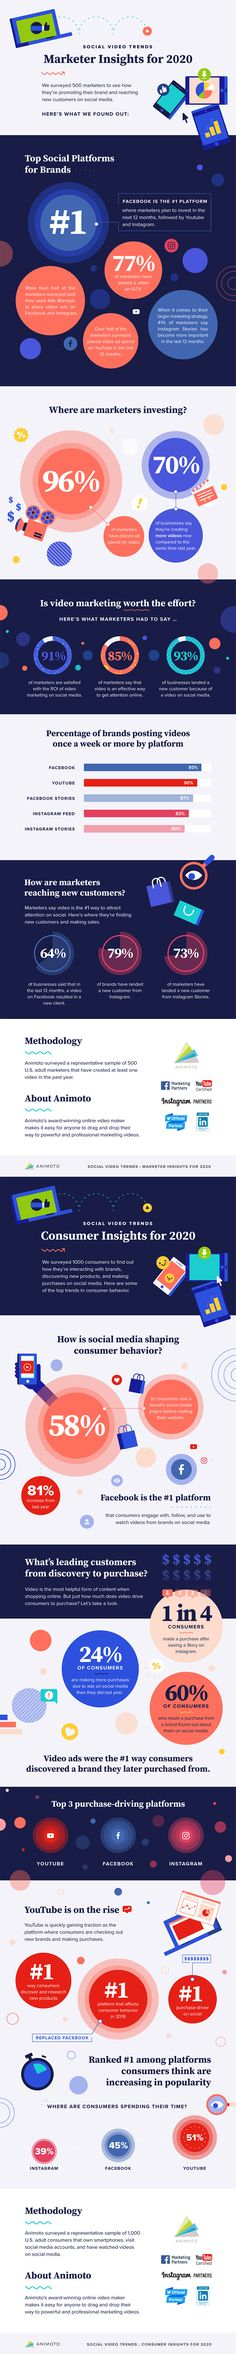 10 Consumer and Marketer Social Video Trends That Will Shape 2020 [Infographic] Online Marketing, Social Media Marketing, Digital Marketing, Social Media Video, Consumer Behaviour, Trends, Shape, Infographics, Tools